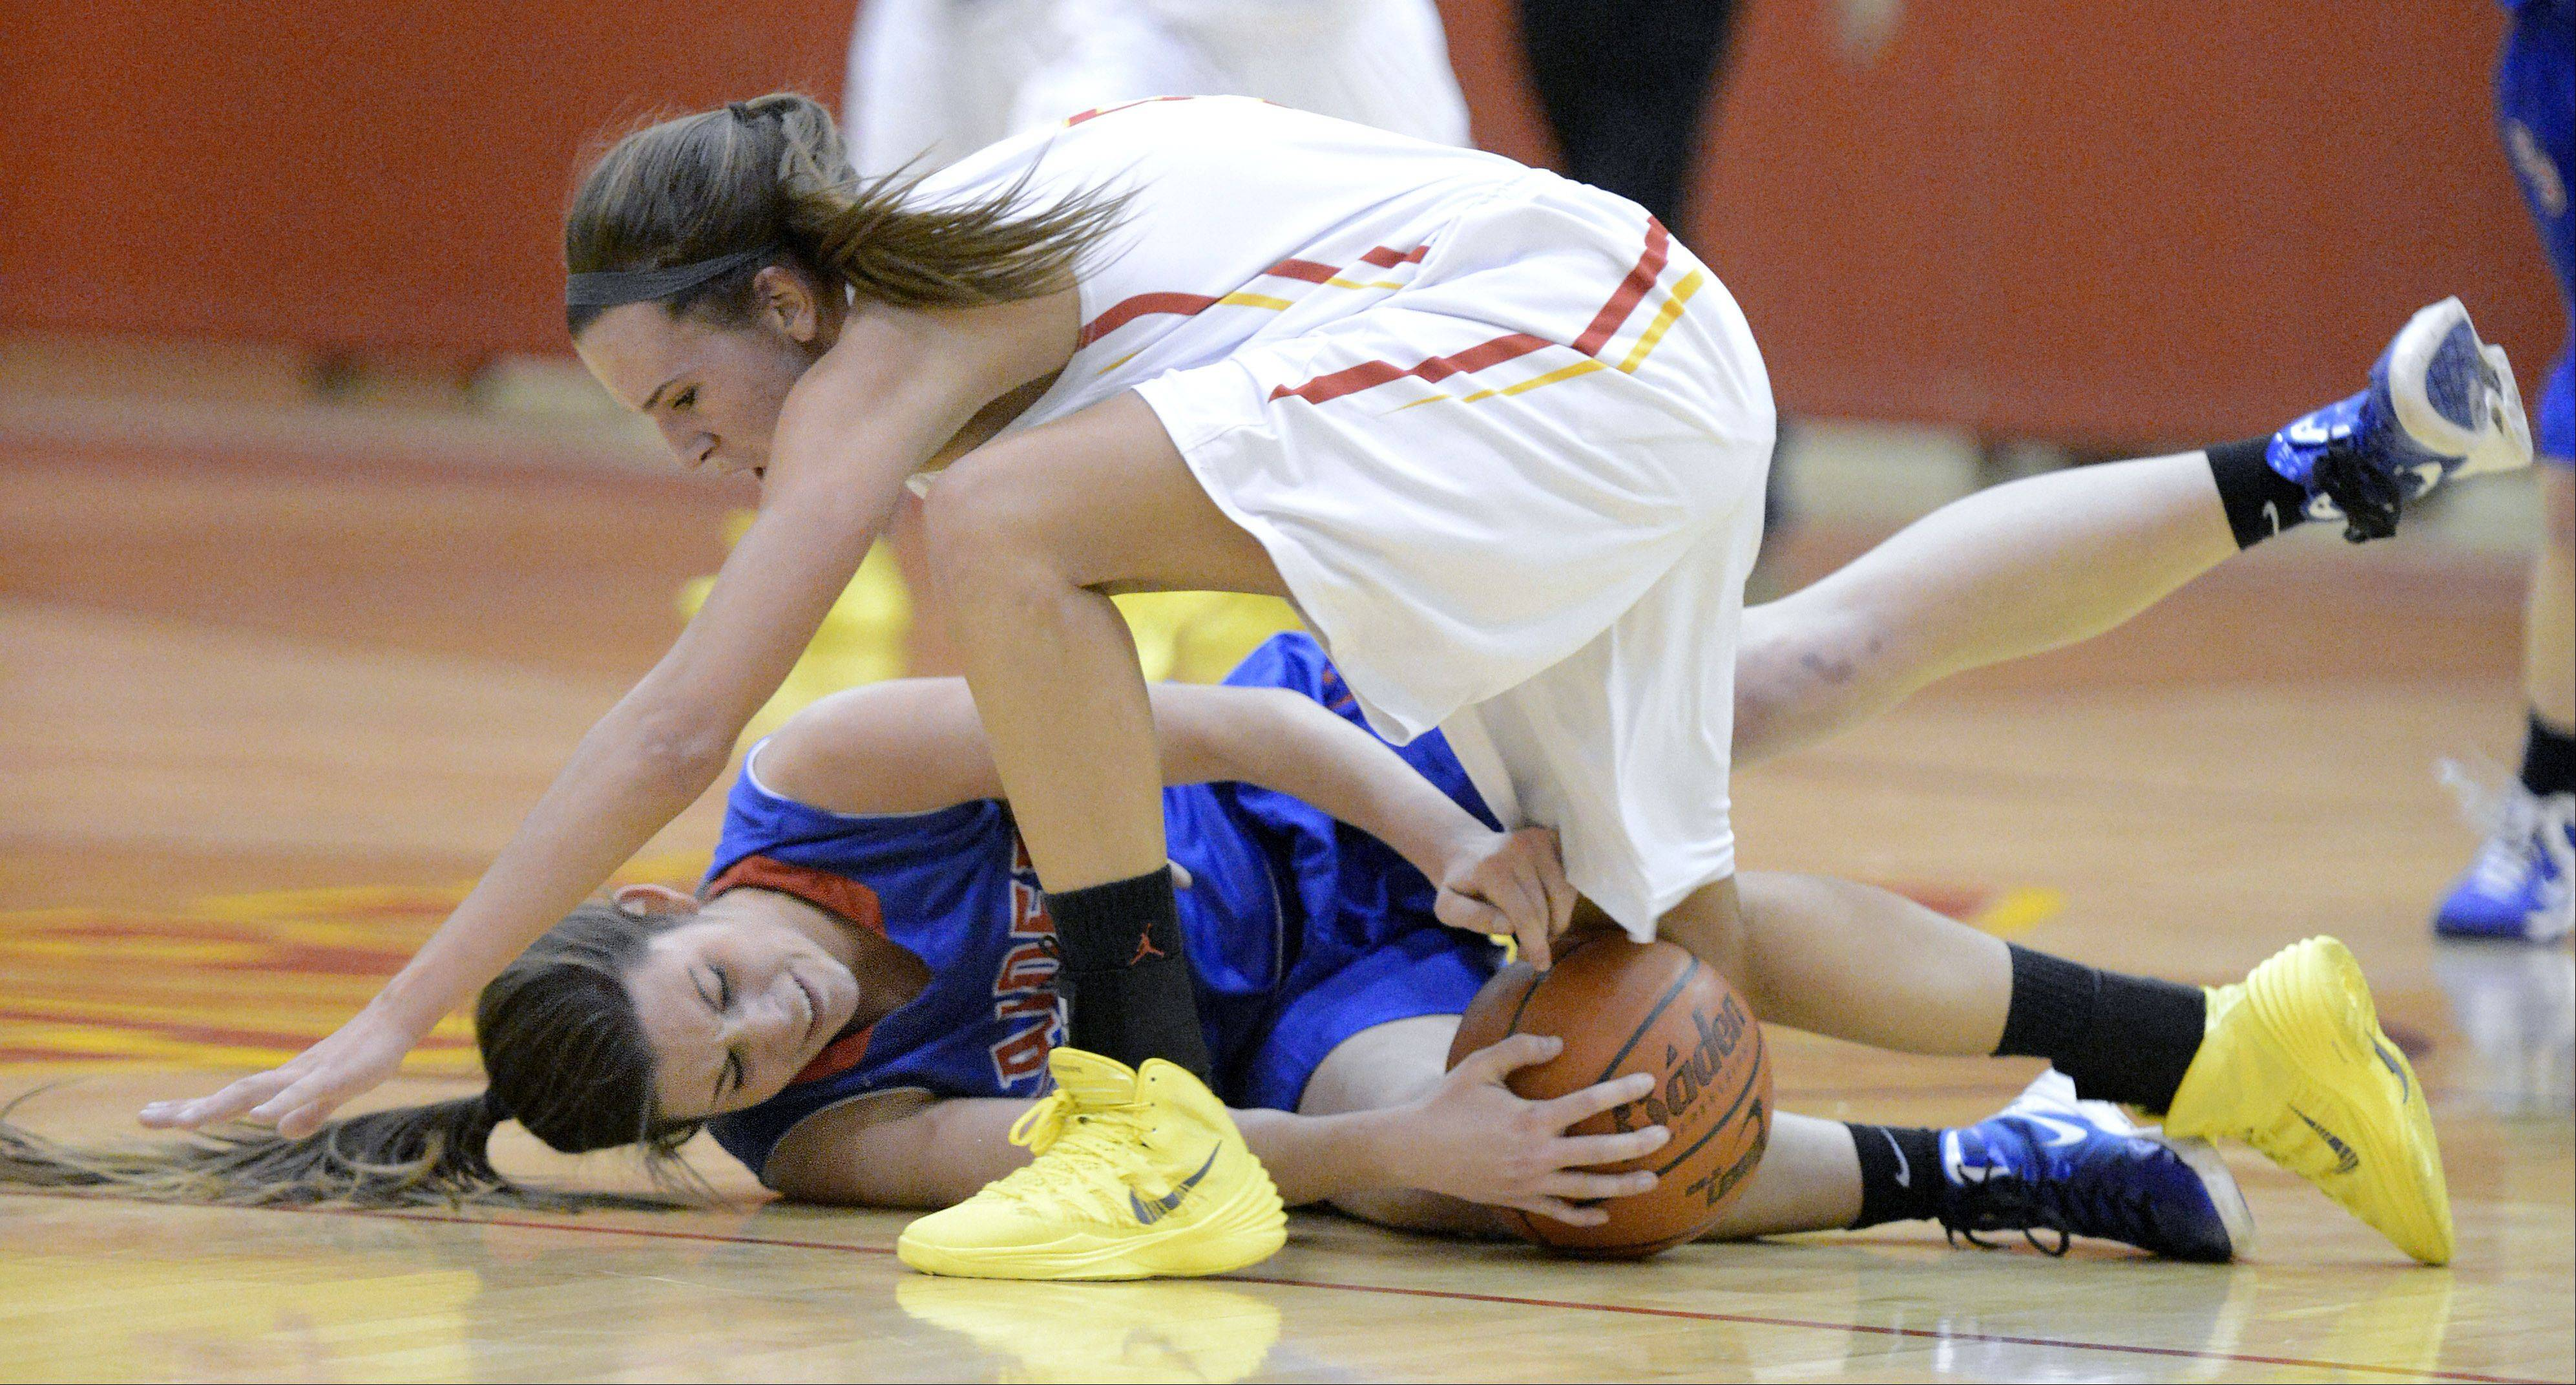 Glenbard South's Alex LaPonte and Batavia's Liza Fruendt go down wrestling for the ball in the first quarter on Tuesday, November 19.